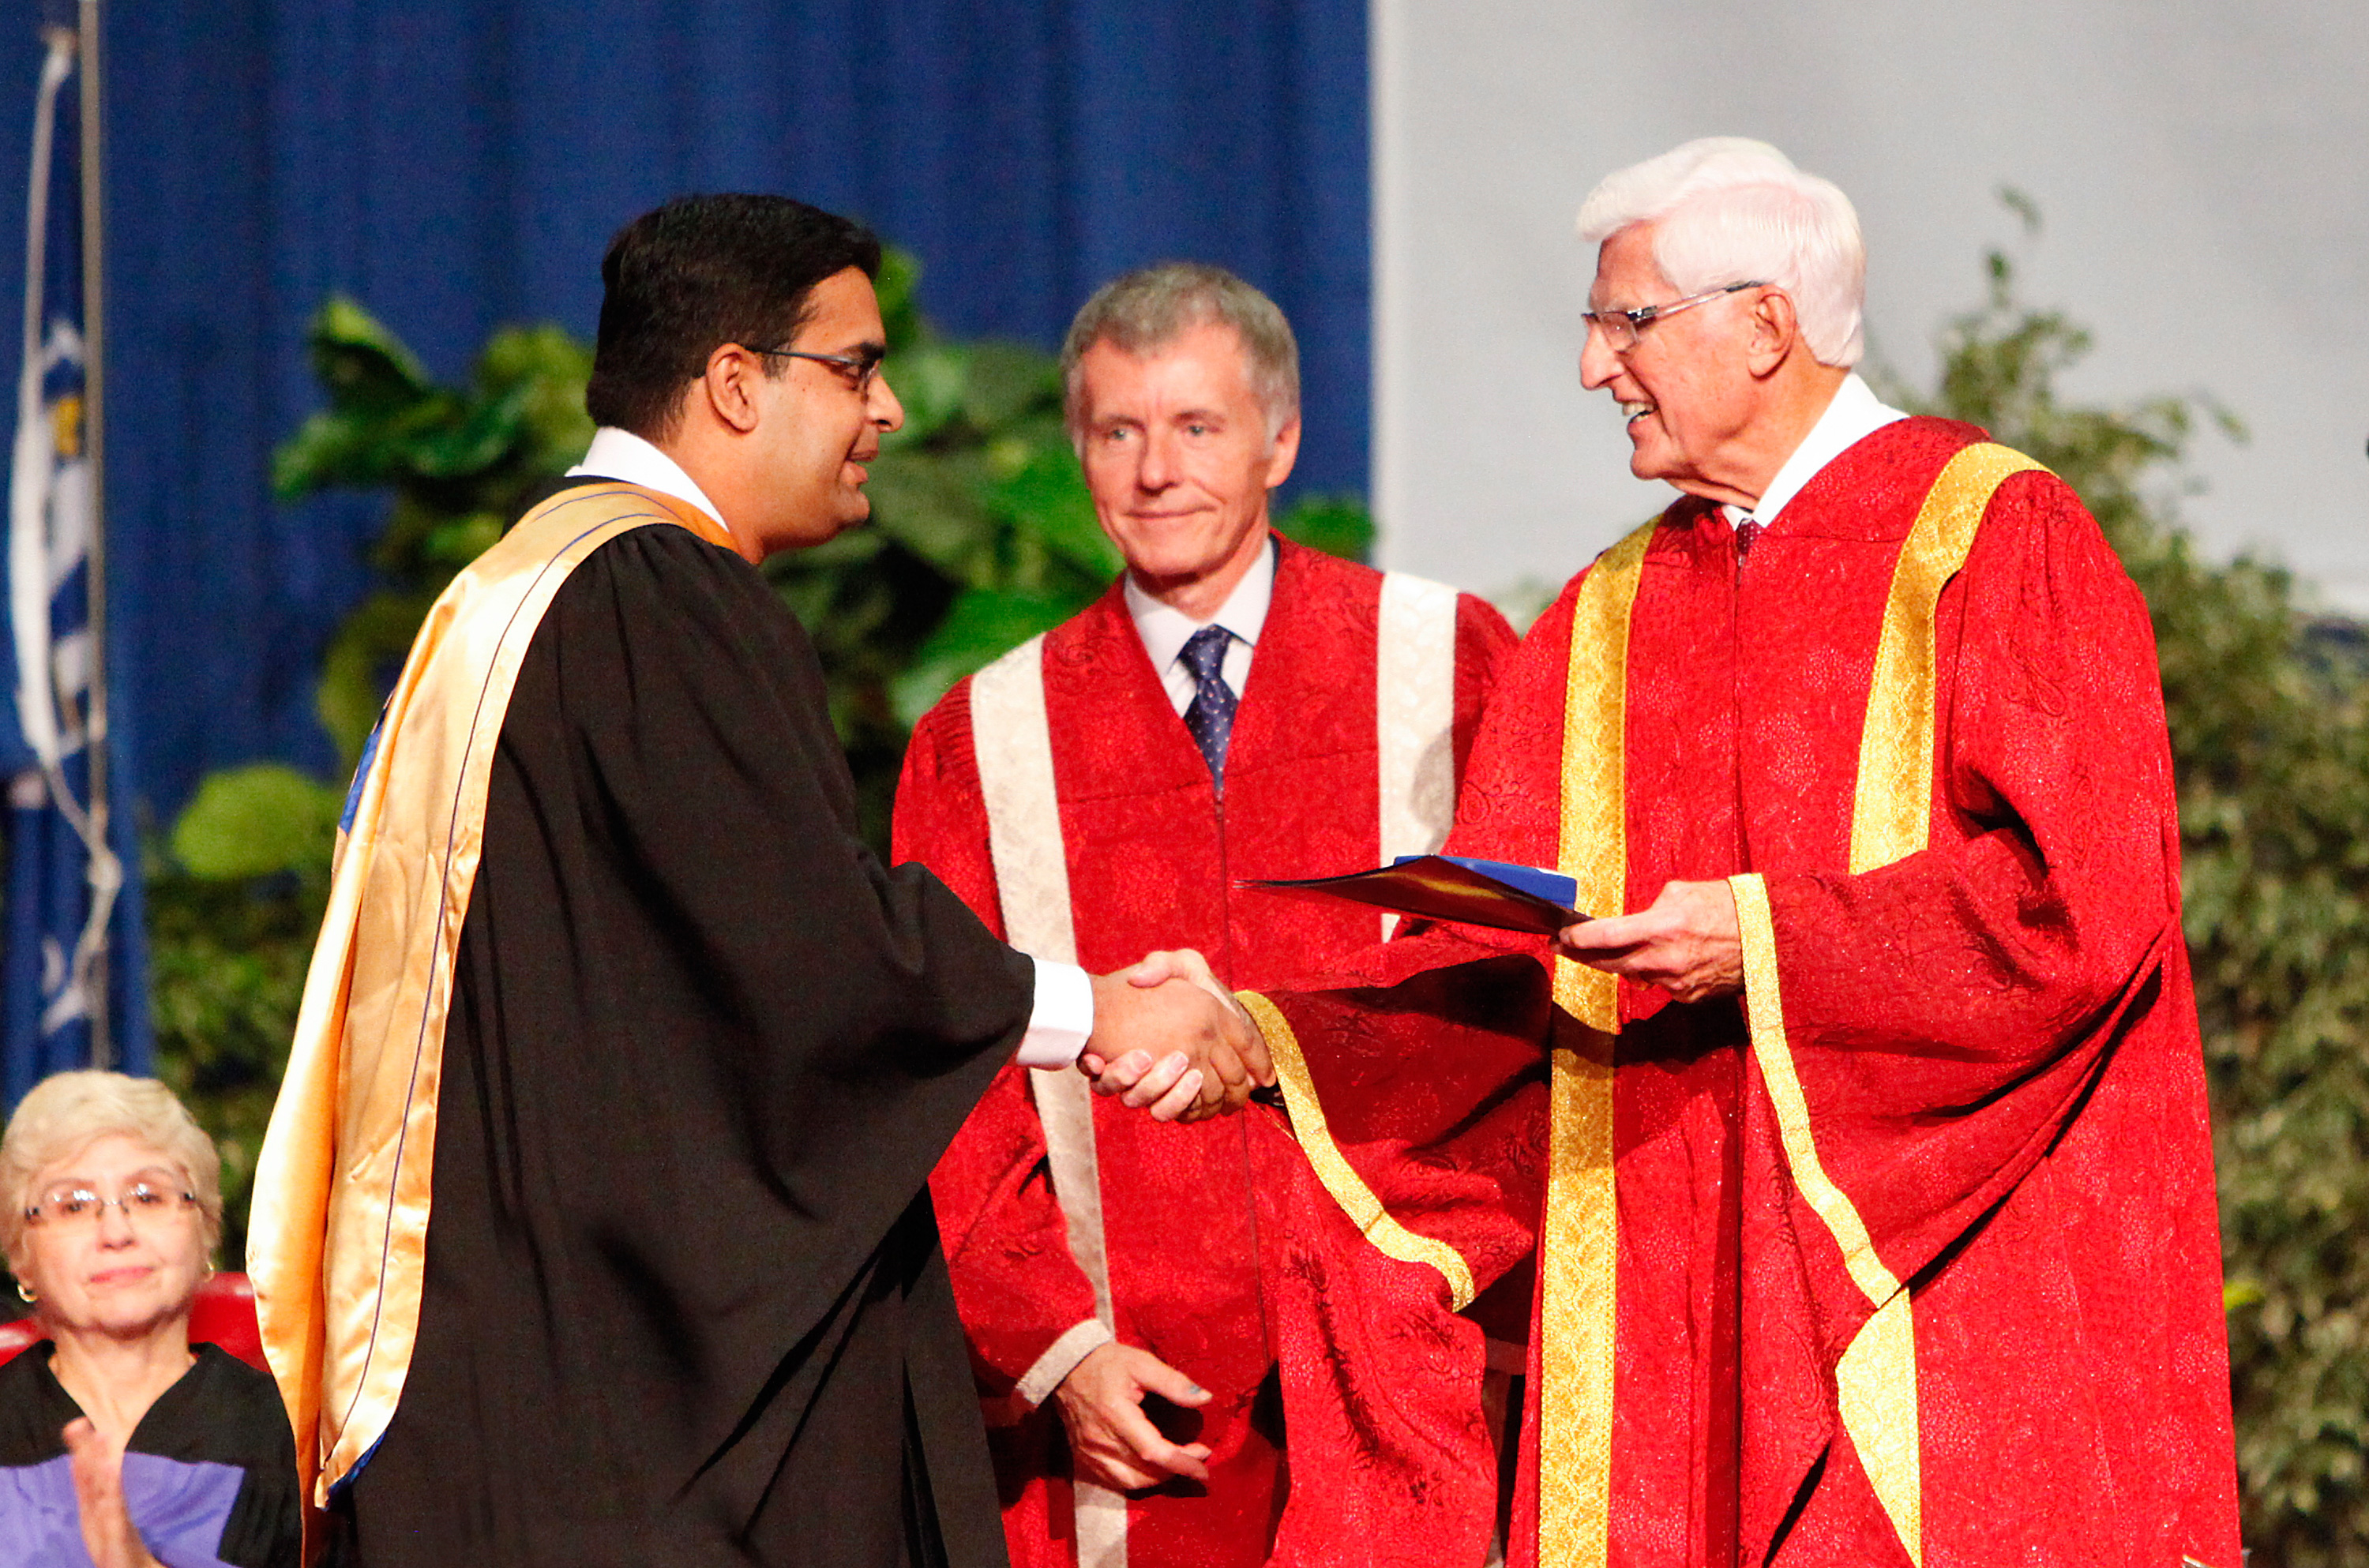 Lakshmi Varaha Iyer, a recipient of the Governor General's Gold Medal, receives congratulations from UWindsor president Alan Wildeman and chancellor Ed Lumley, Saturday at Convocation.